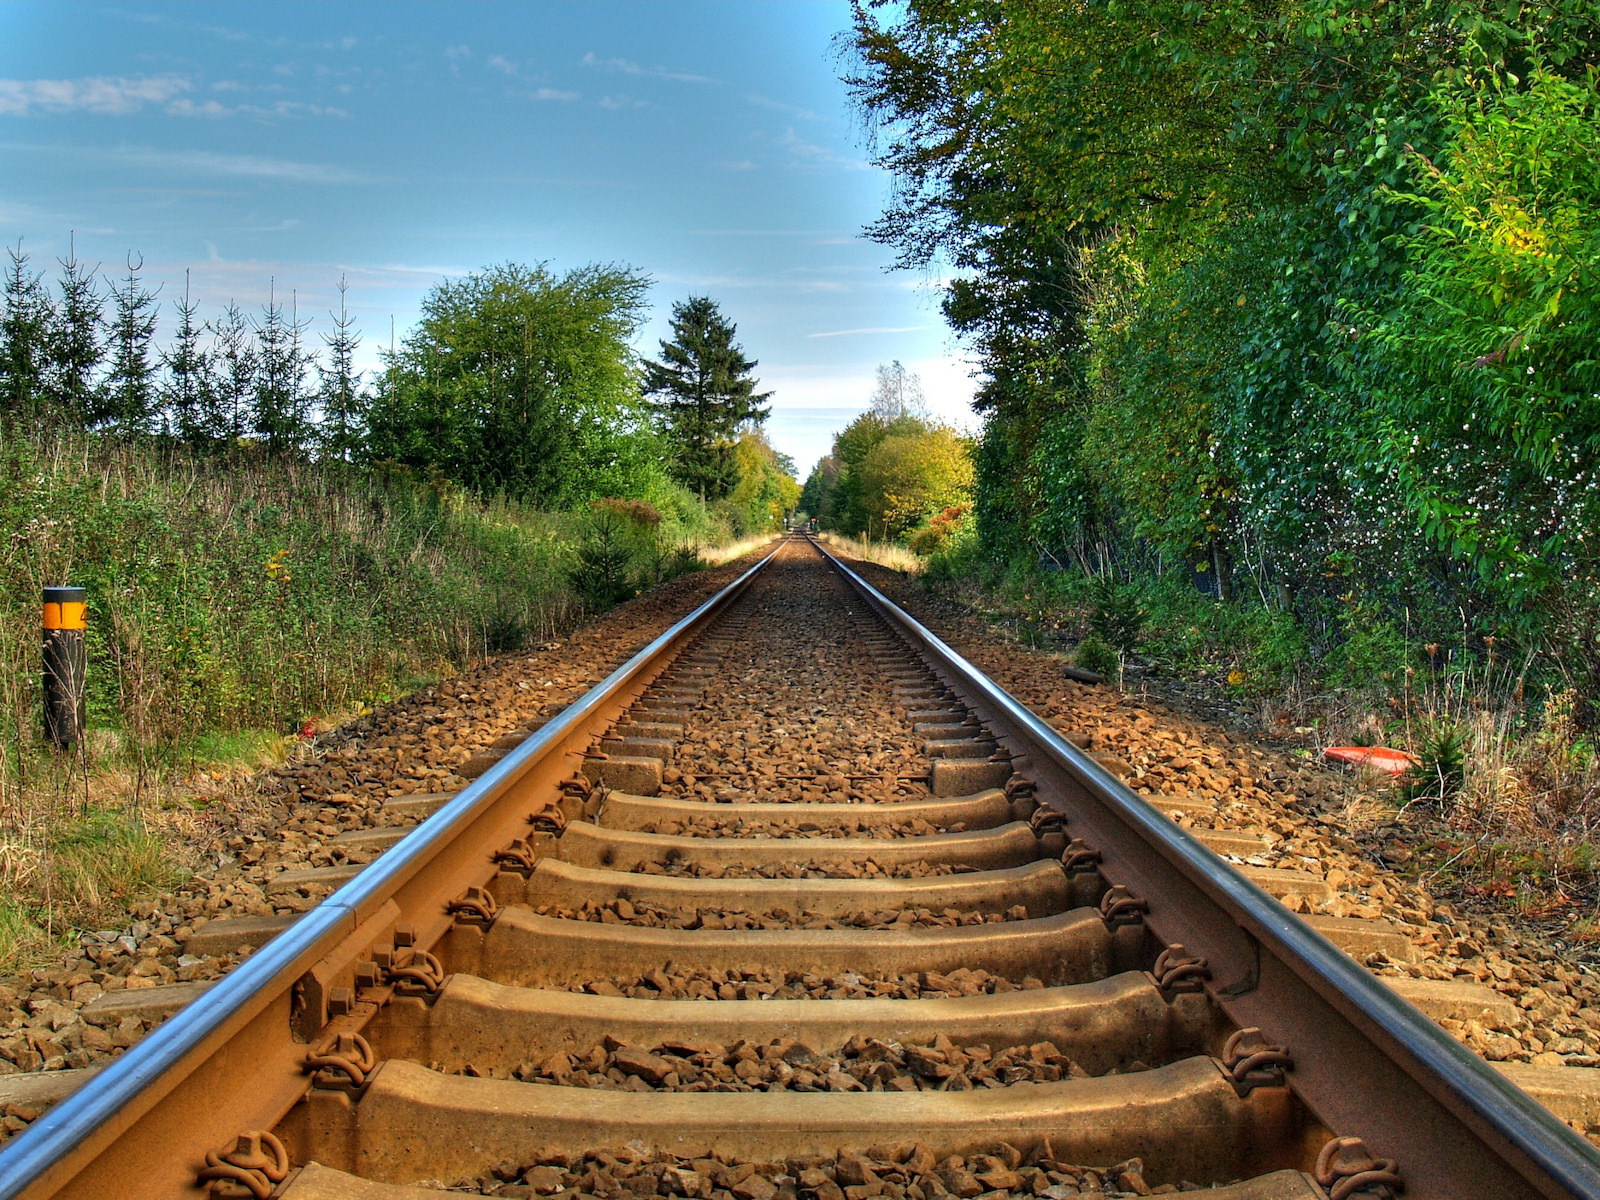 Trains Railroad Free Desktop Wallpapers for Widescreen HD and